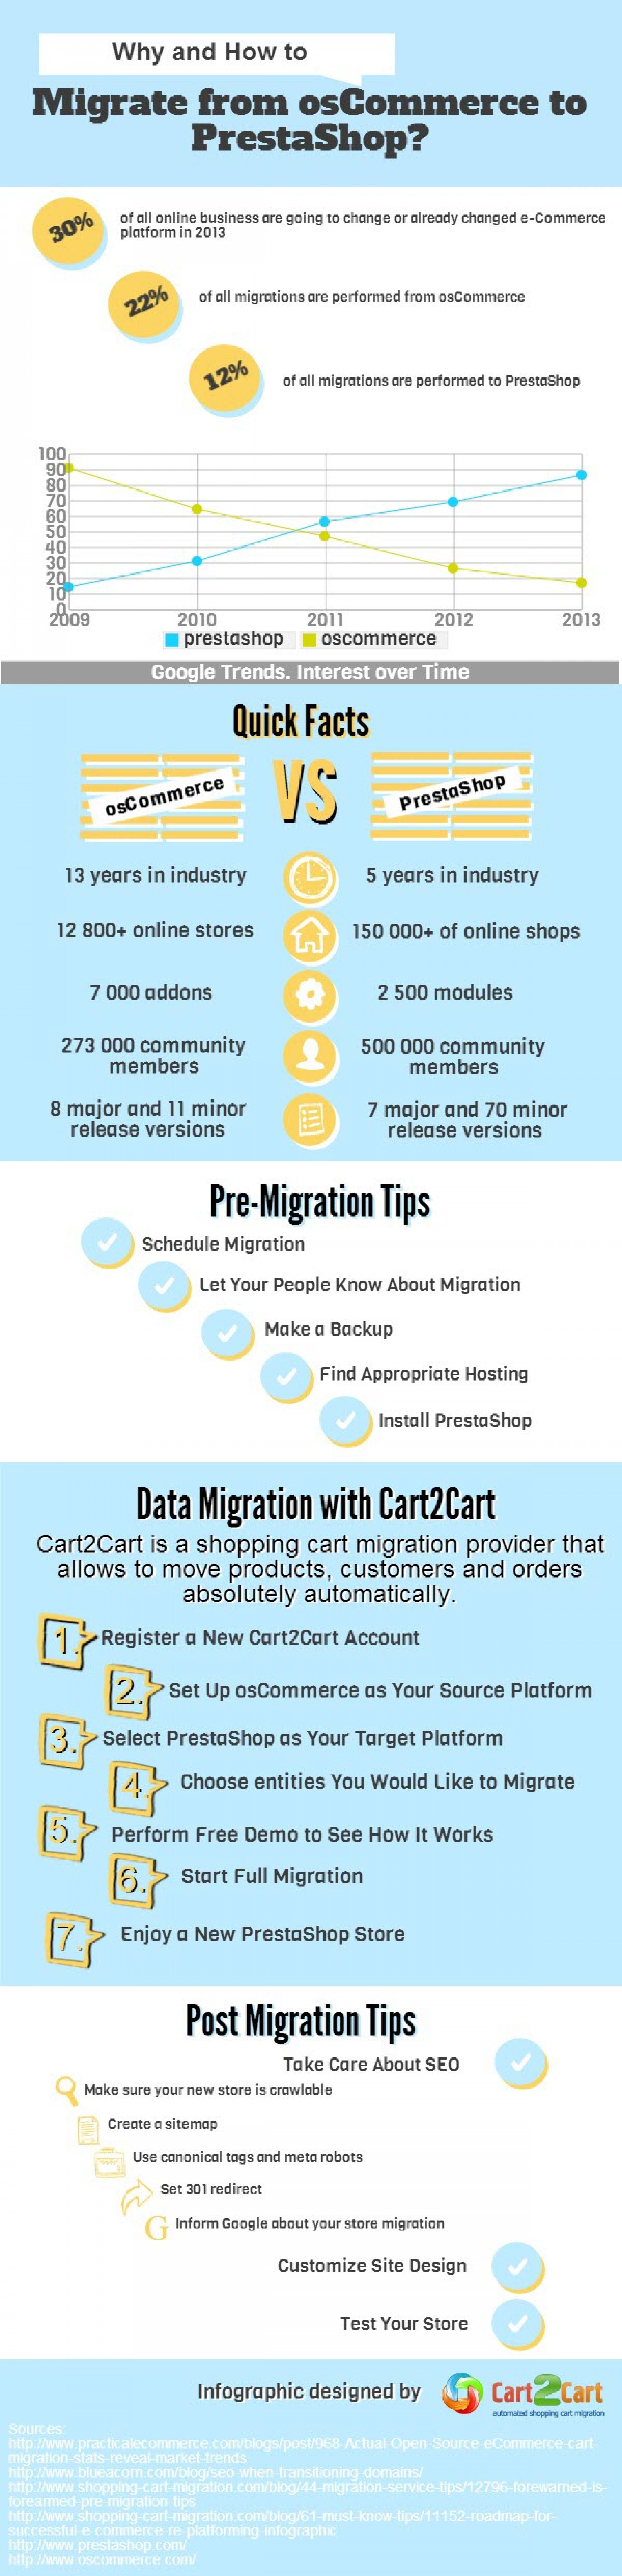 Why and How to Migrate from osCommerce to PrestaShop Infographic